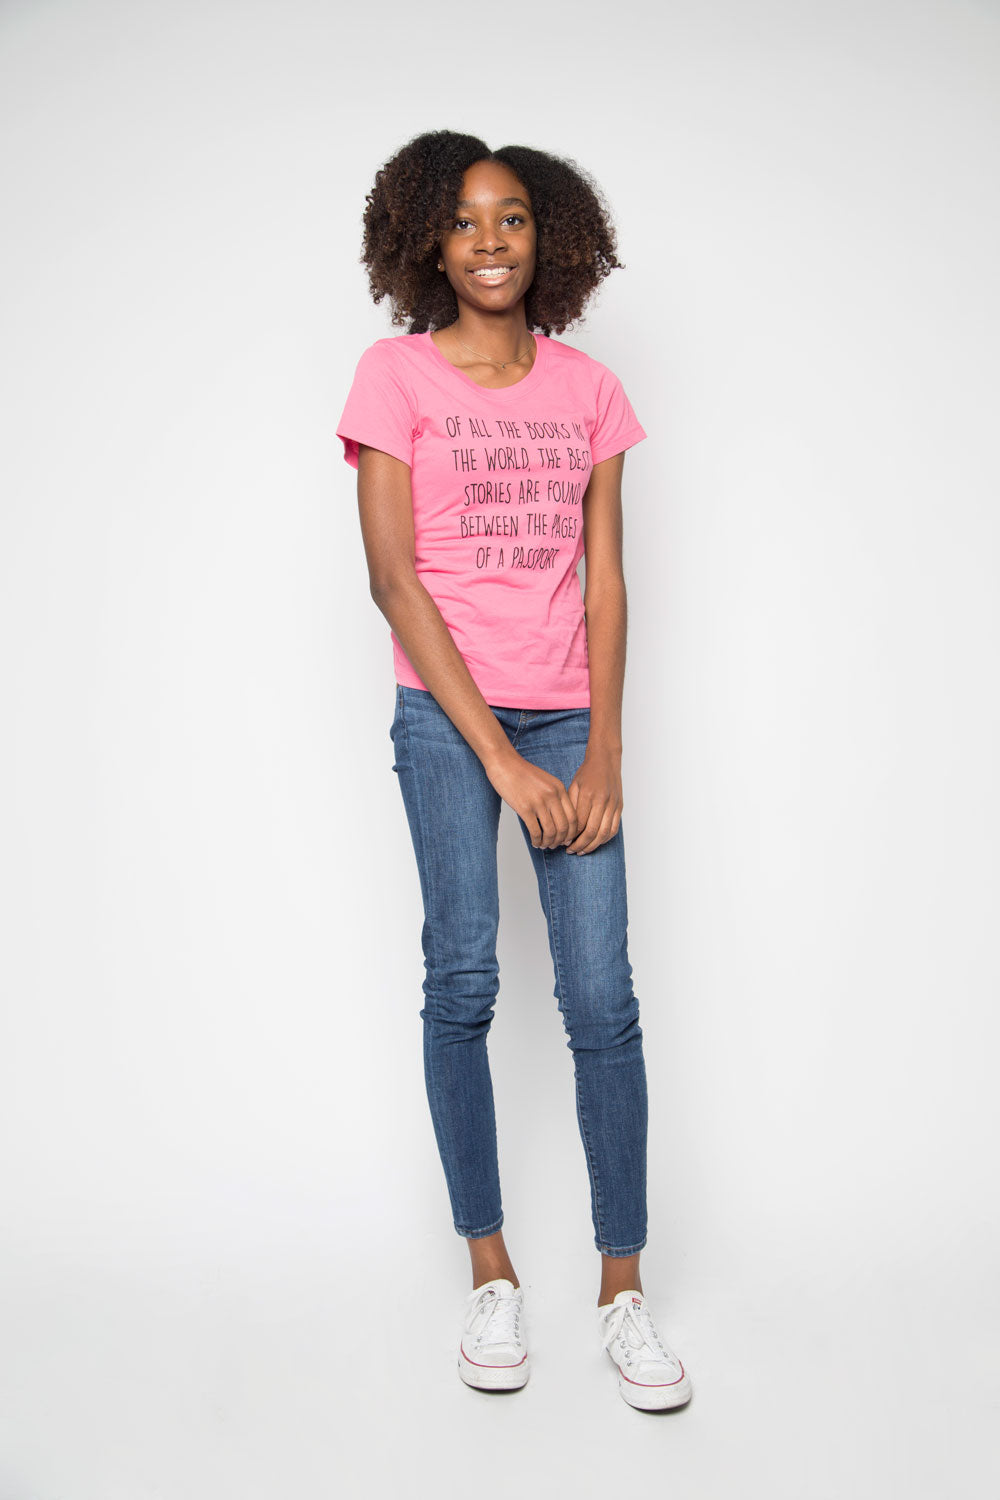 Passport Shirt in Hot Pink - Trunk Series, LLC